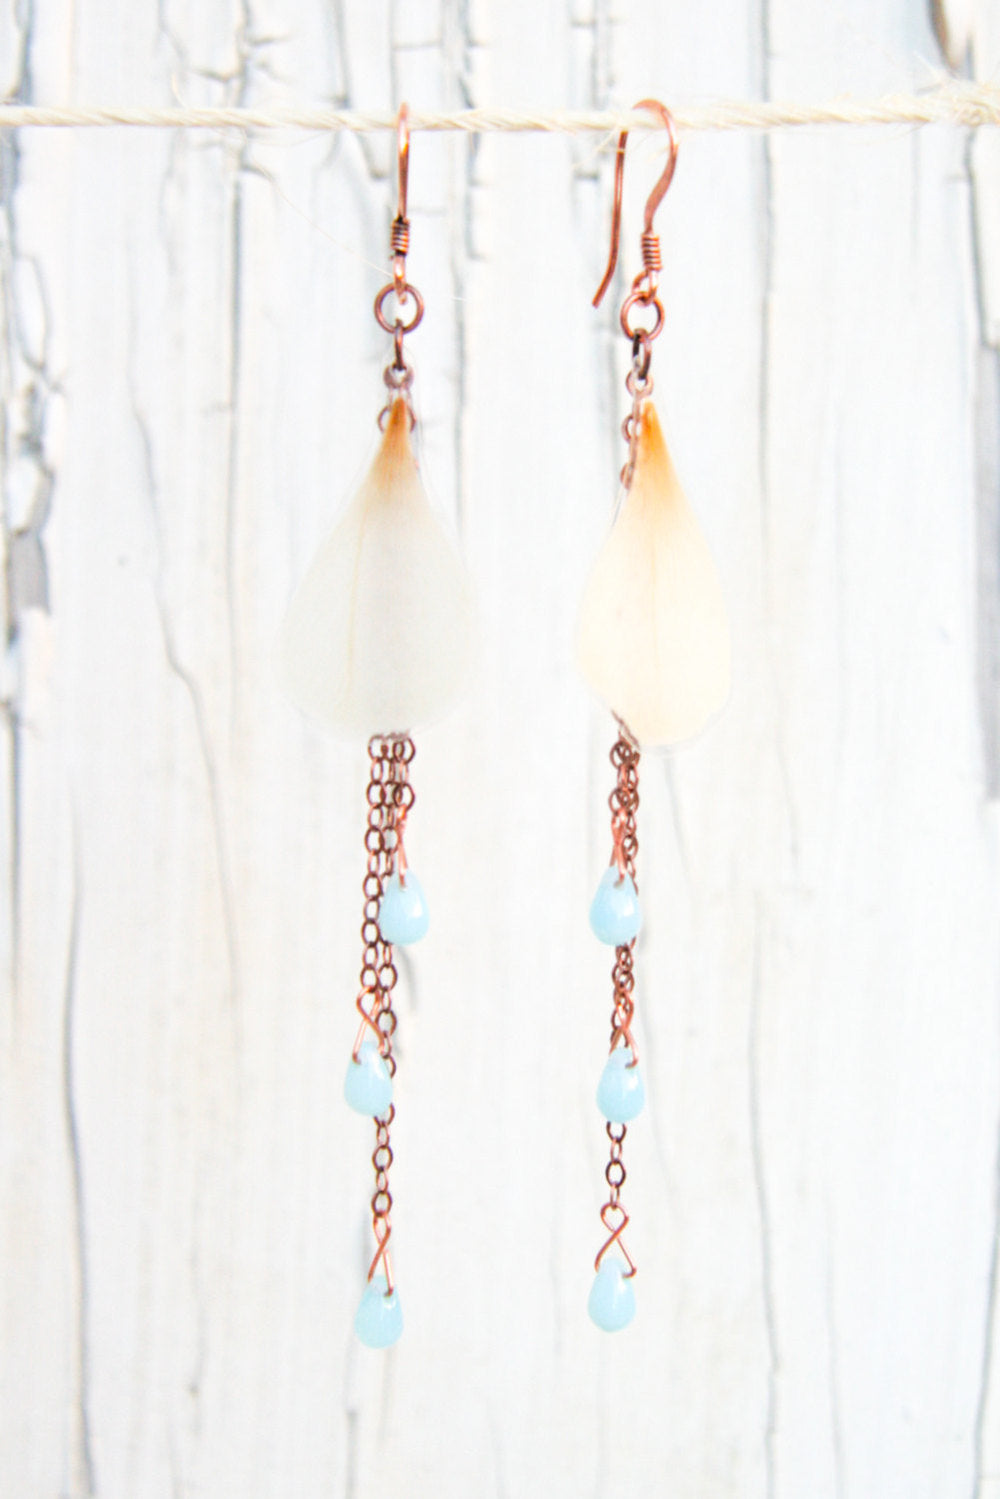 White Ranunculus Pressed Flower Earrings with Aqua Czech Glass Beads